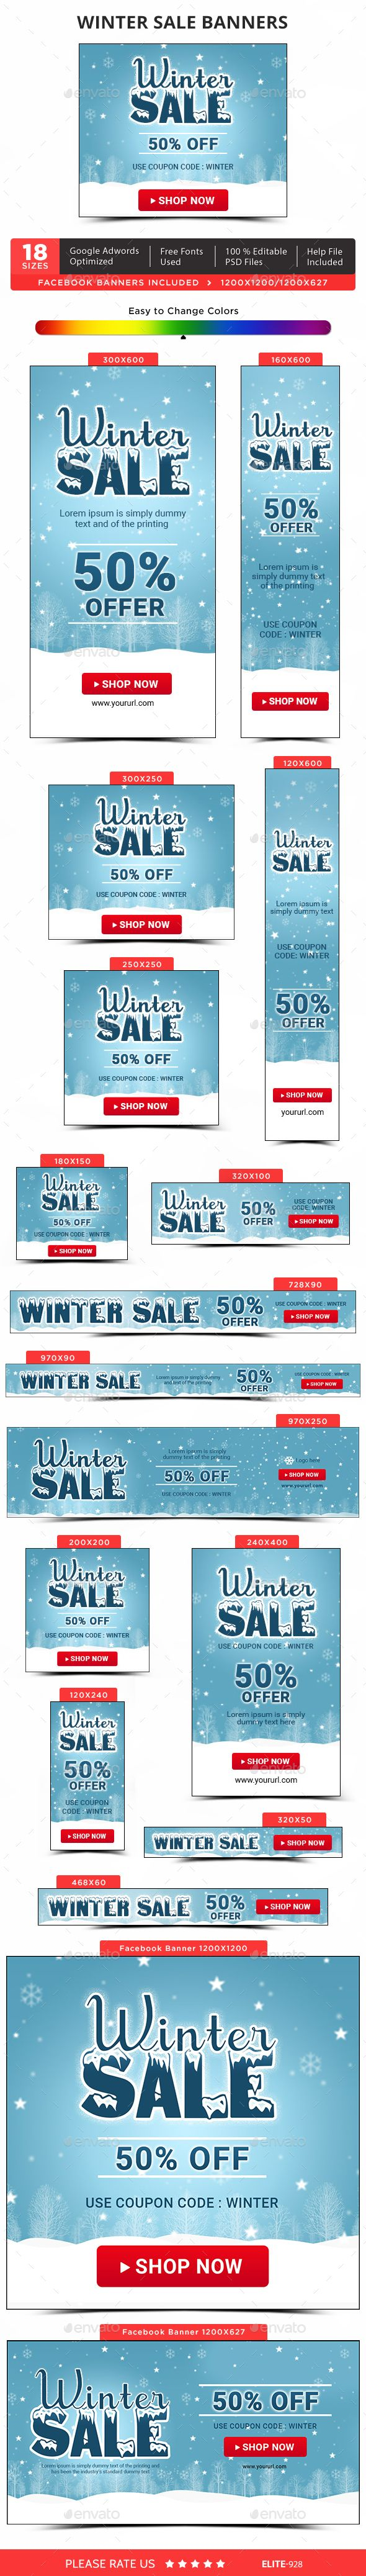 Winter Sale Banners — Photoshop PSD #deals #marketing • Available here → https://graphicriver.net/item/winter-sale-banners/13979331?ref=pxcr